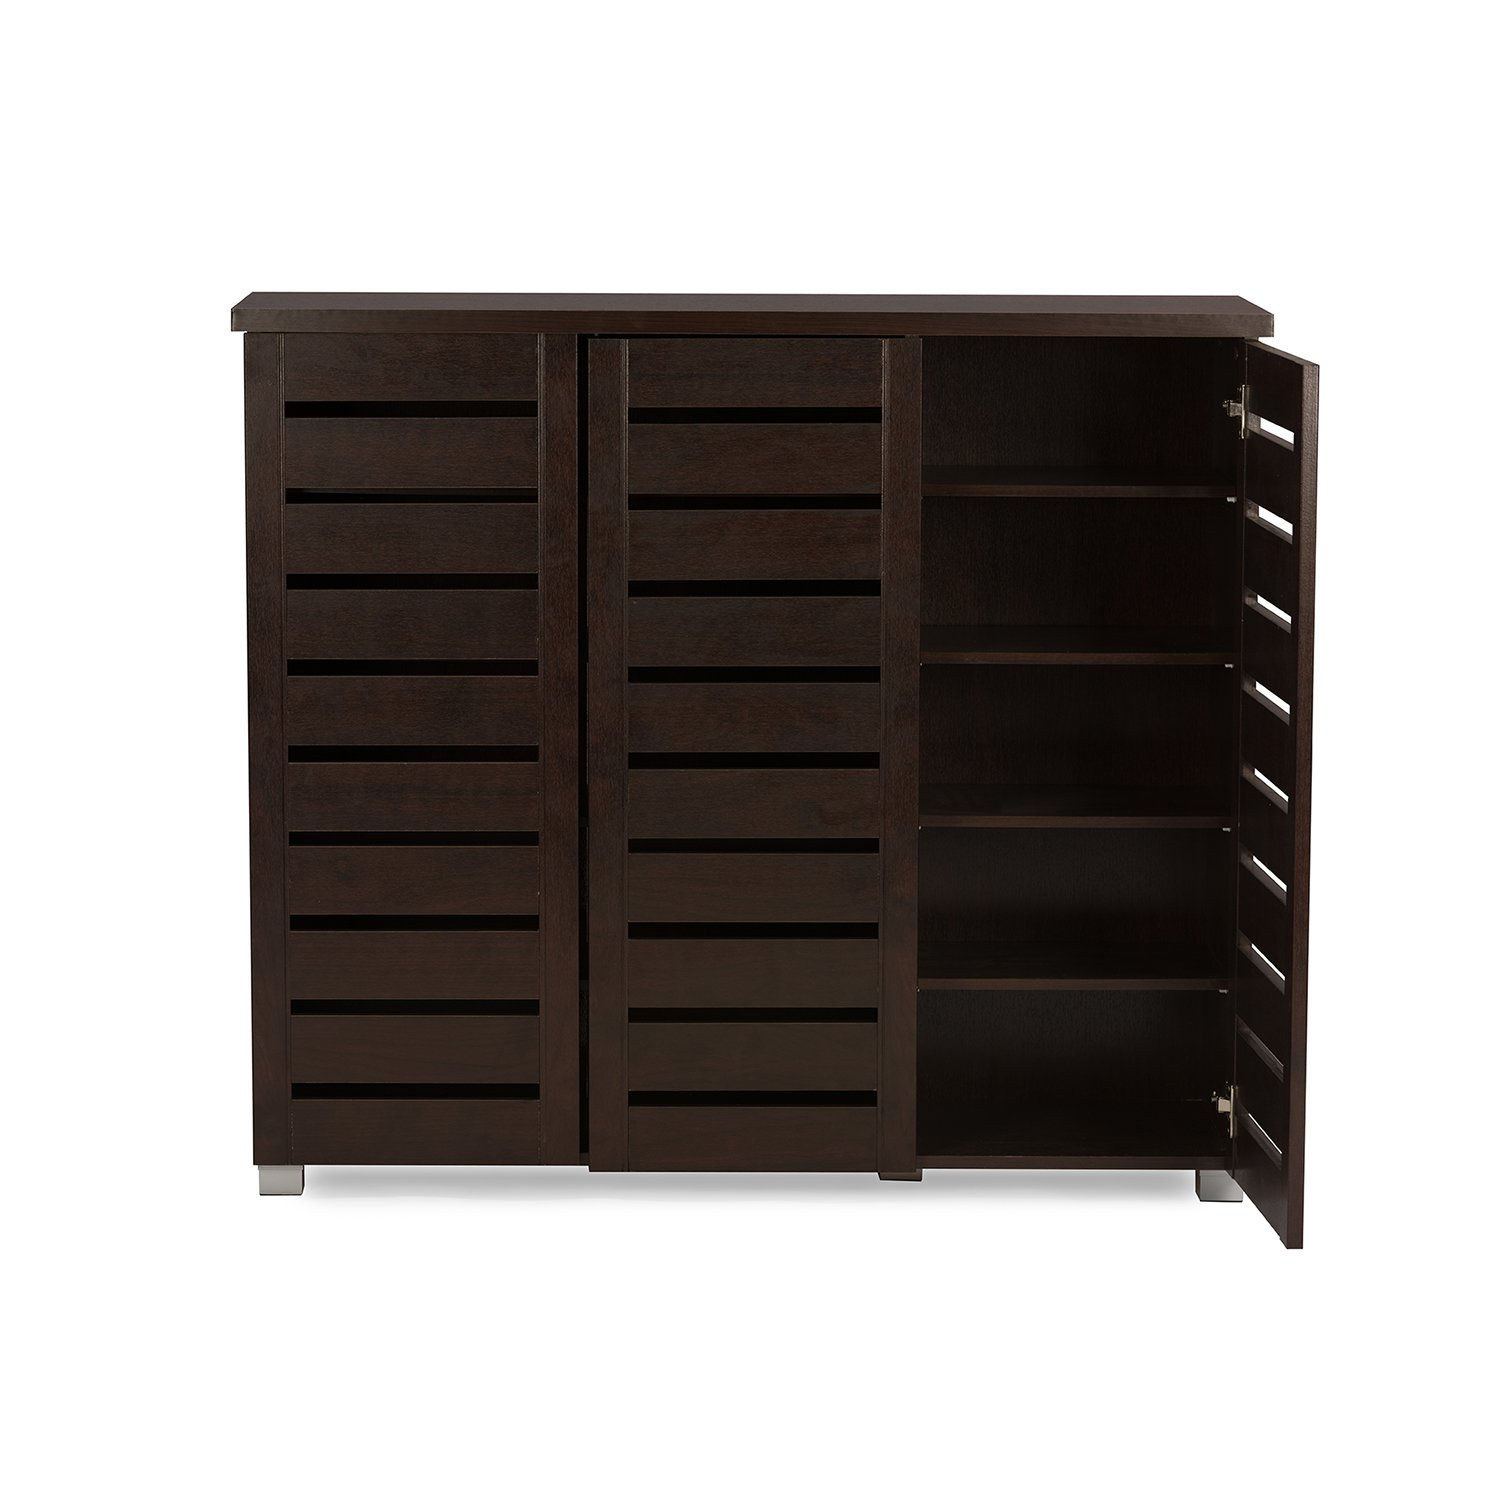 jackie pinterest hautelook styled storage small essential shoe by bunting furniture cabinet danish modern pin on spaces for rooms